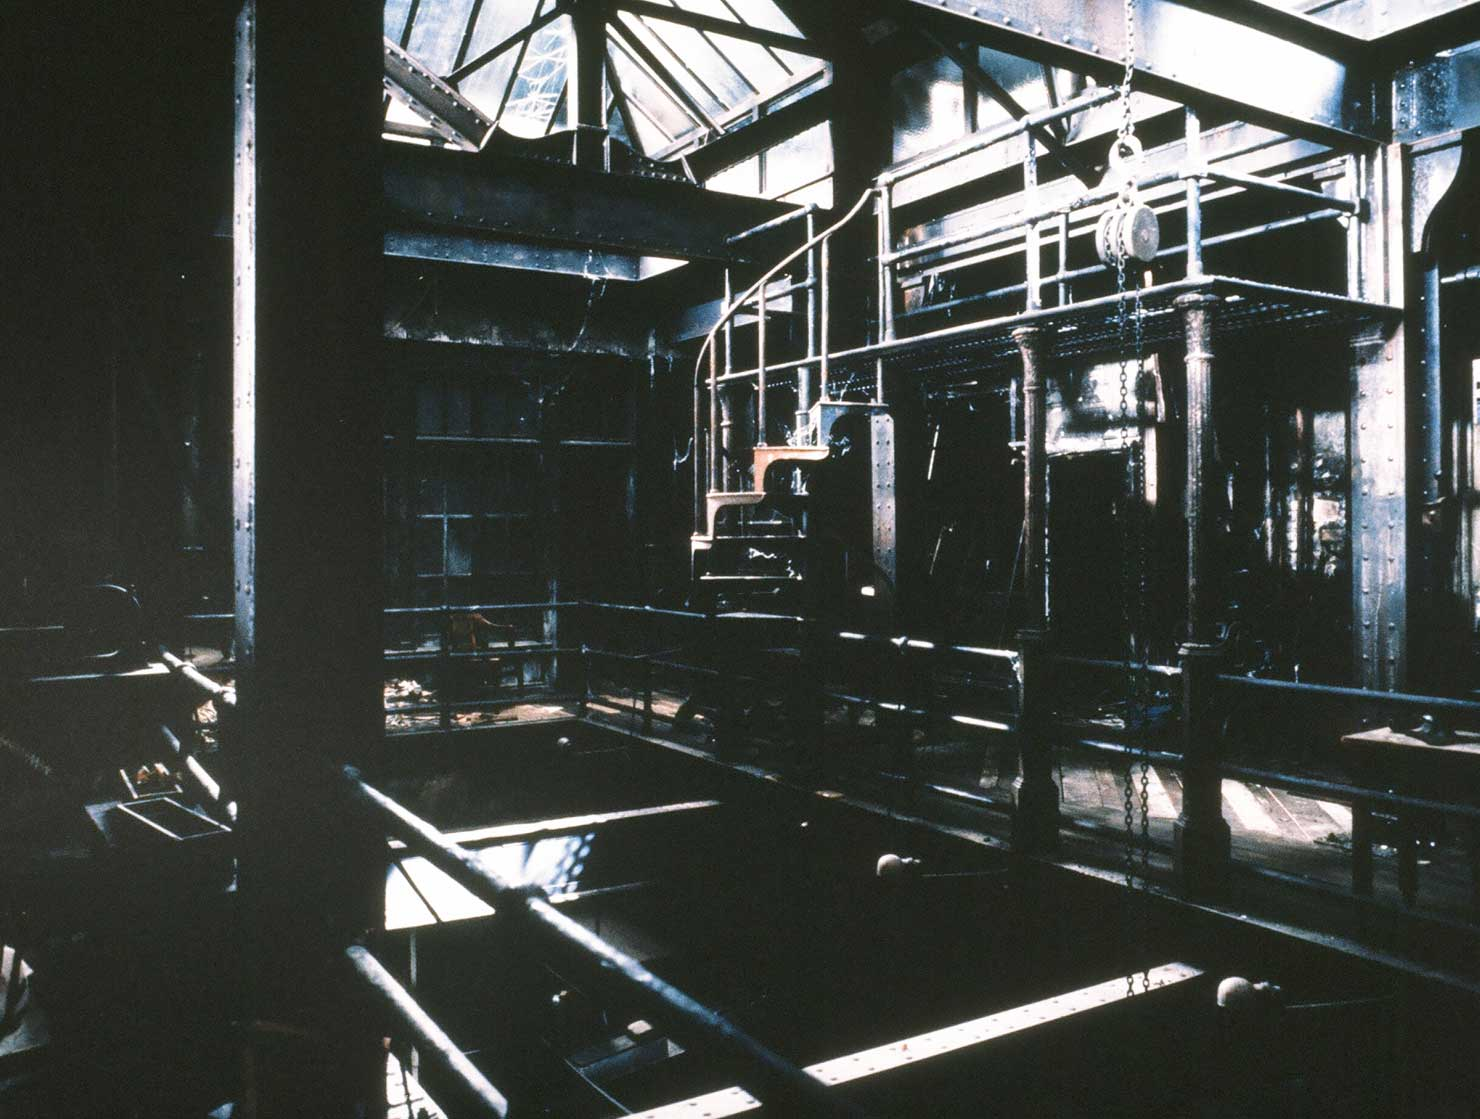 ADDICTED TO LOVE_FILM PRODUCTION DESIGN_1997_HIRES_SA (1).JPG